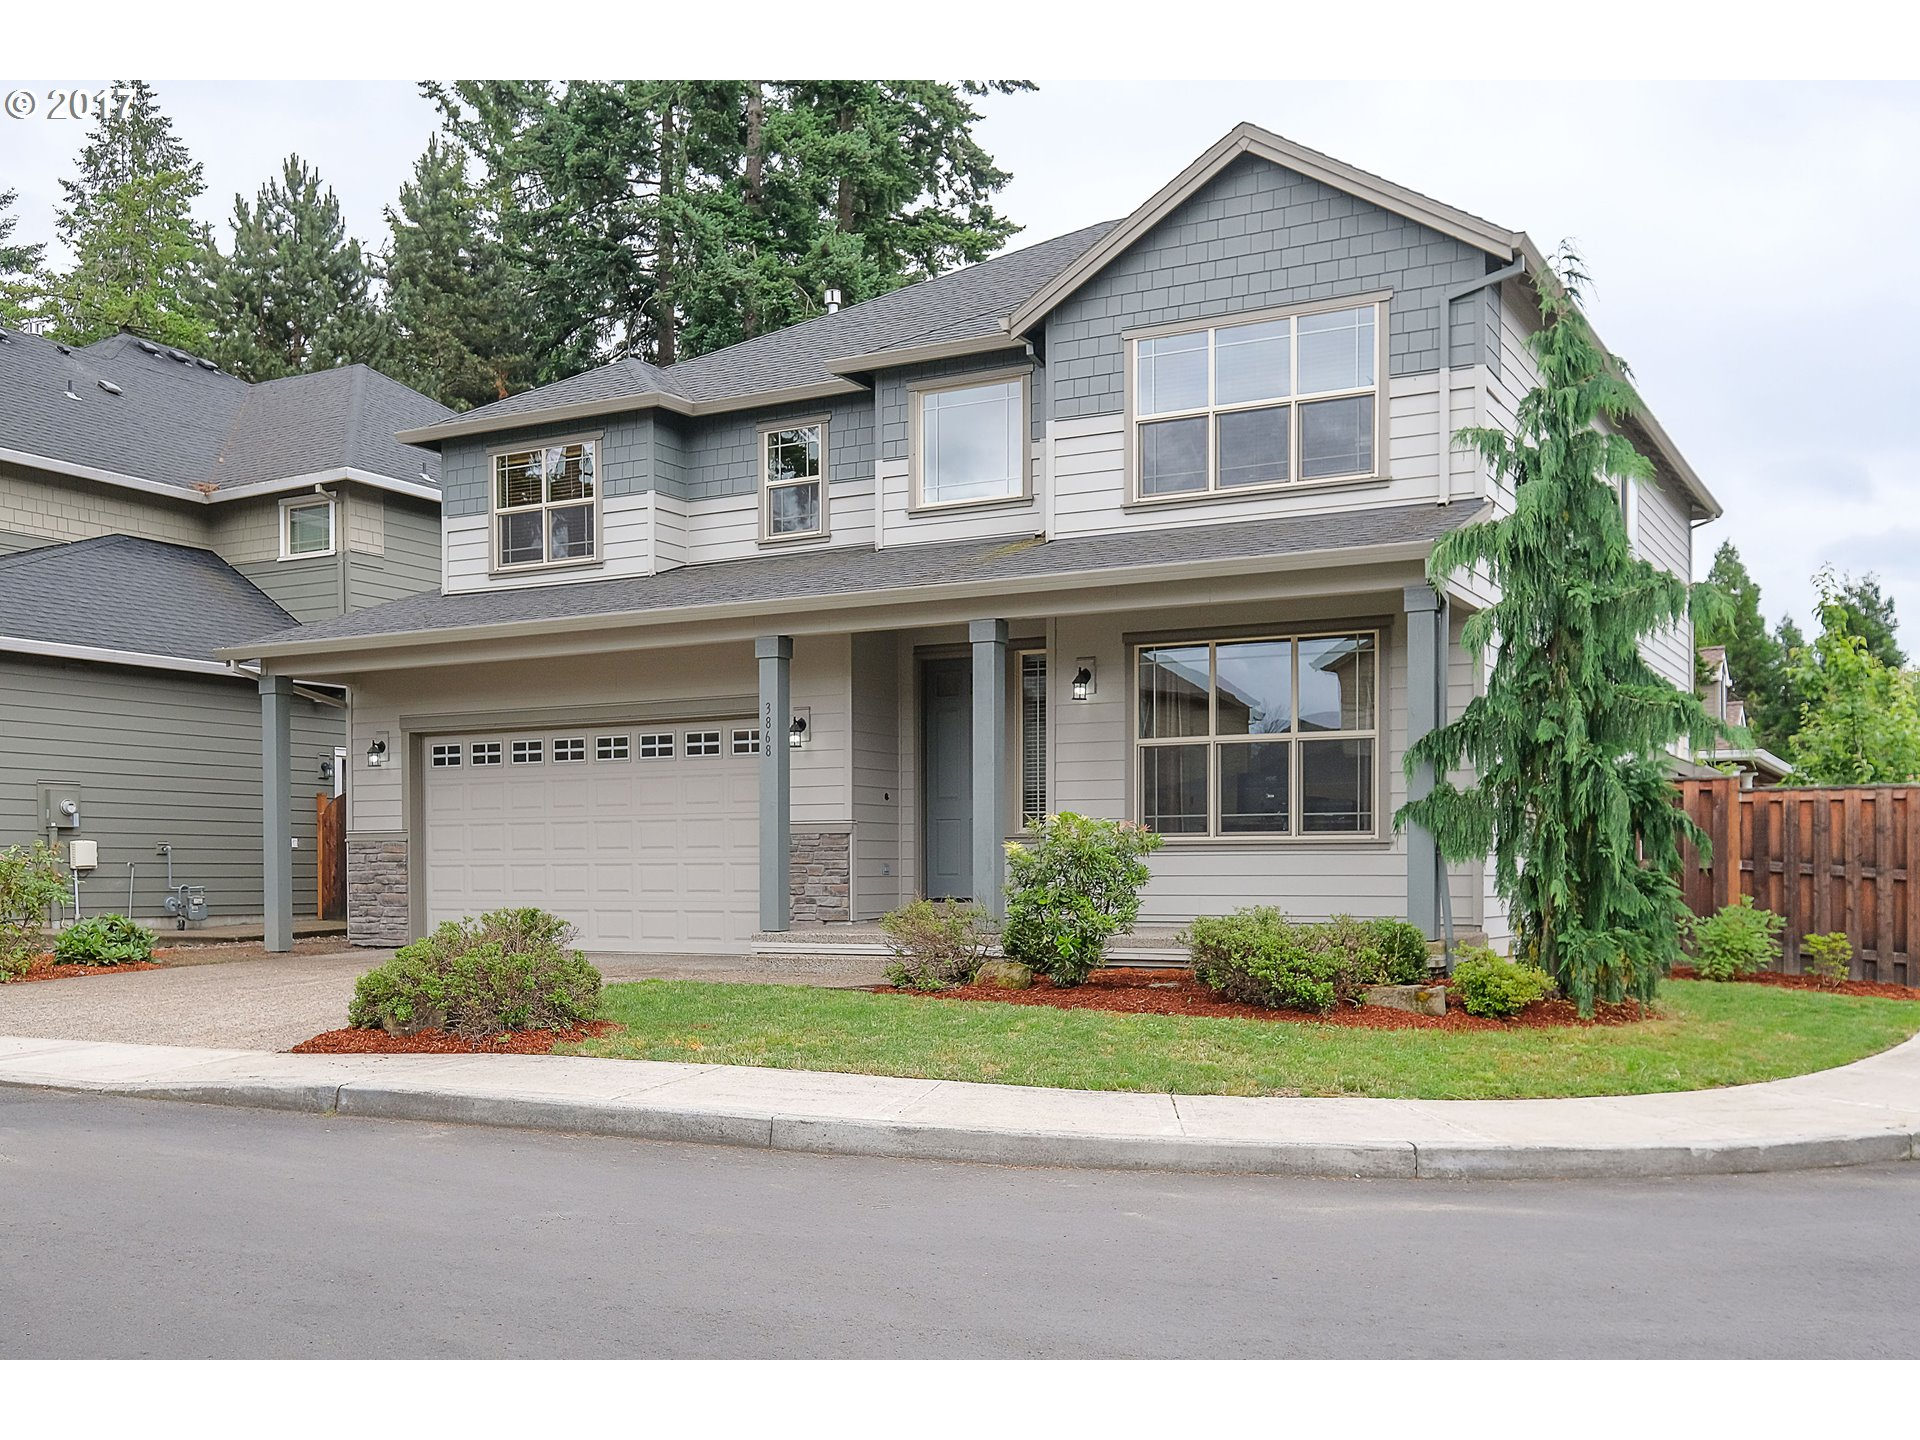 2780 sq. ft 4 bedrooms 2 bathrooms  House For Sale, Portland, OR